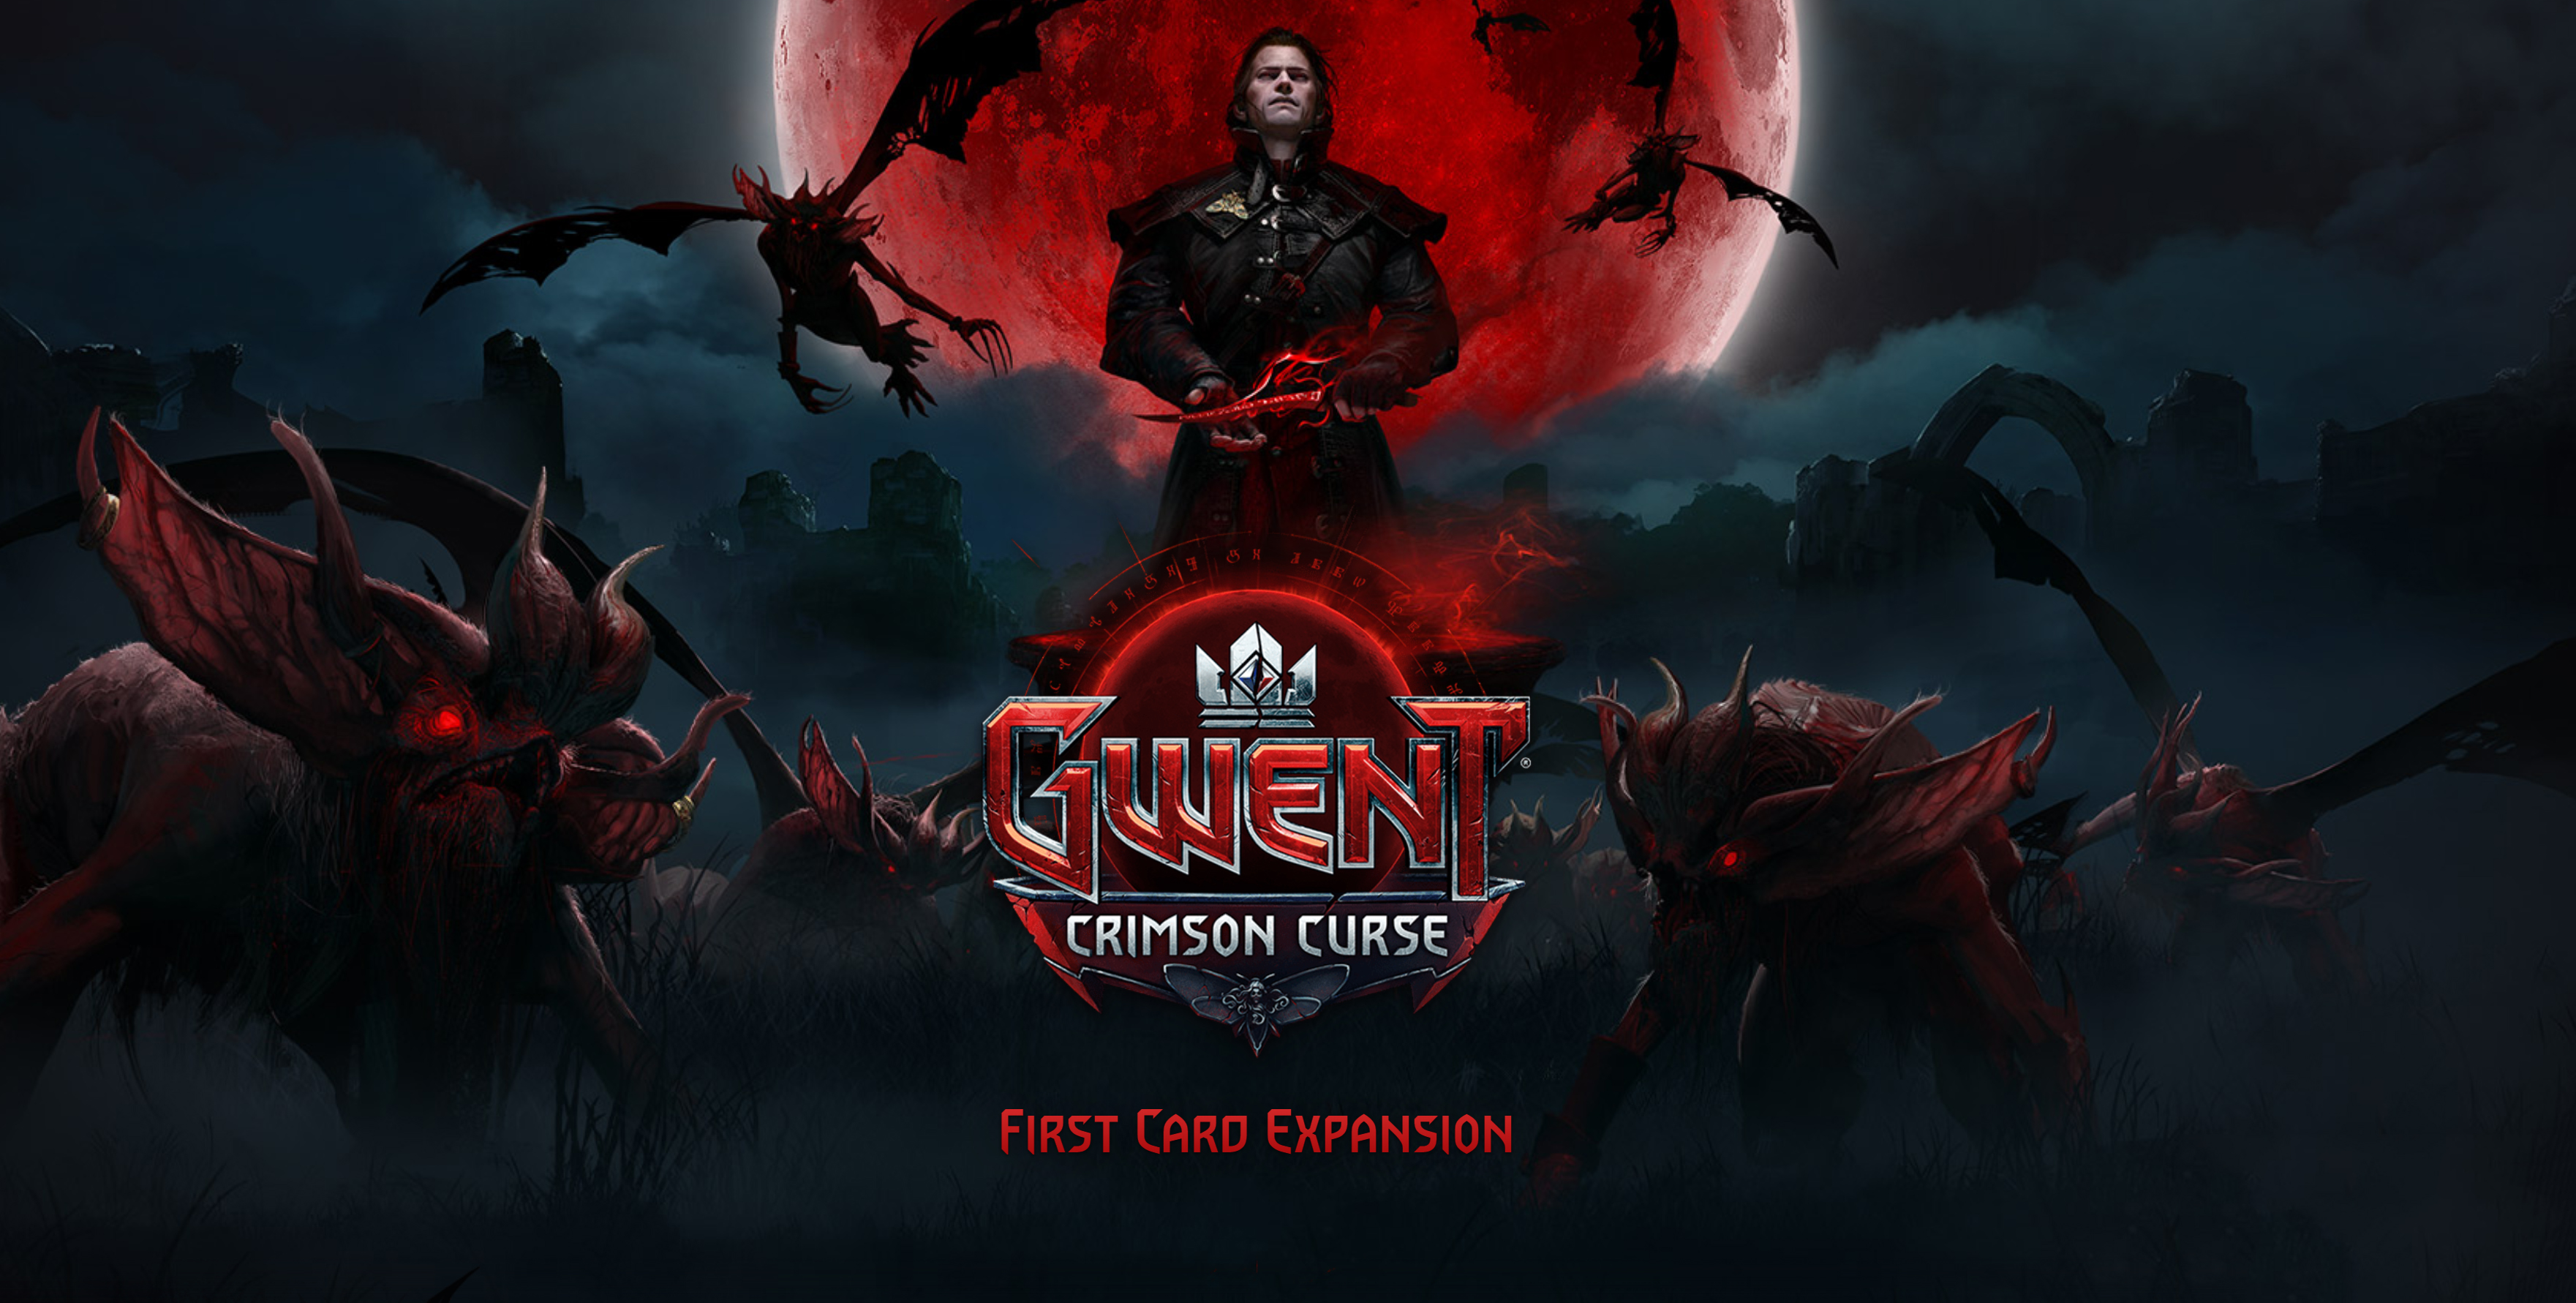 GWENT The Witcher Card Game Expansion Crimson Curse Key Art